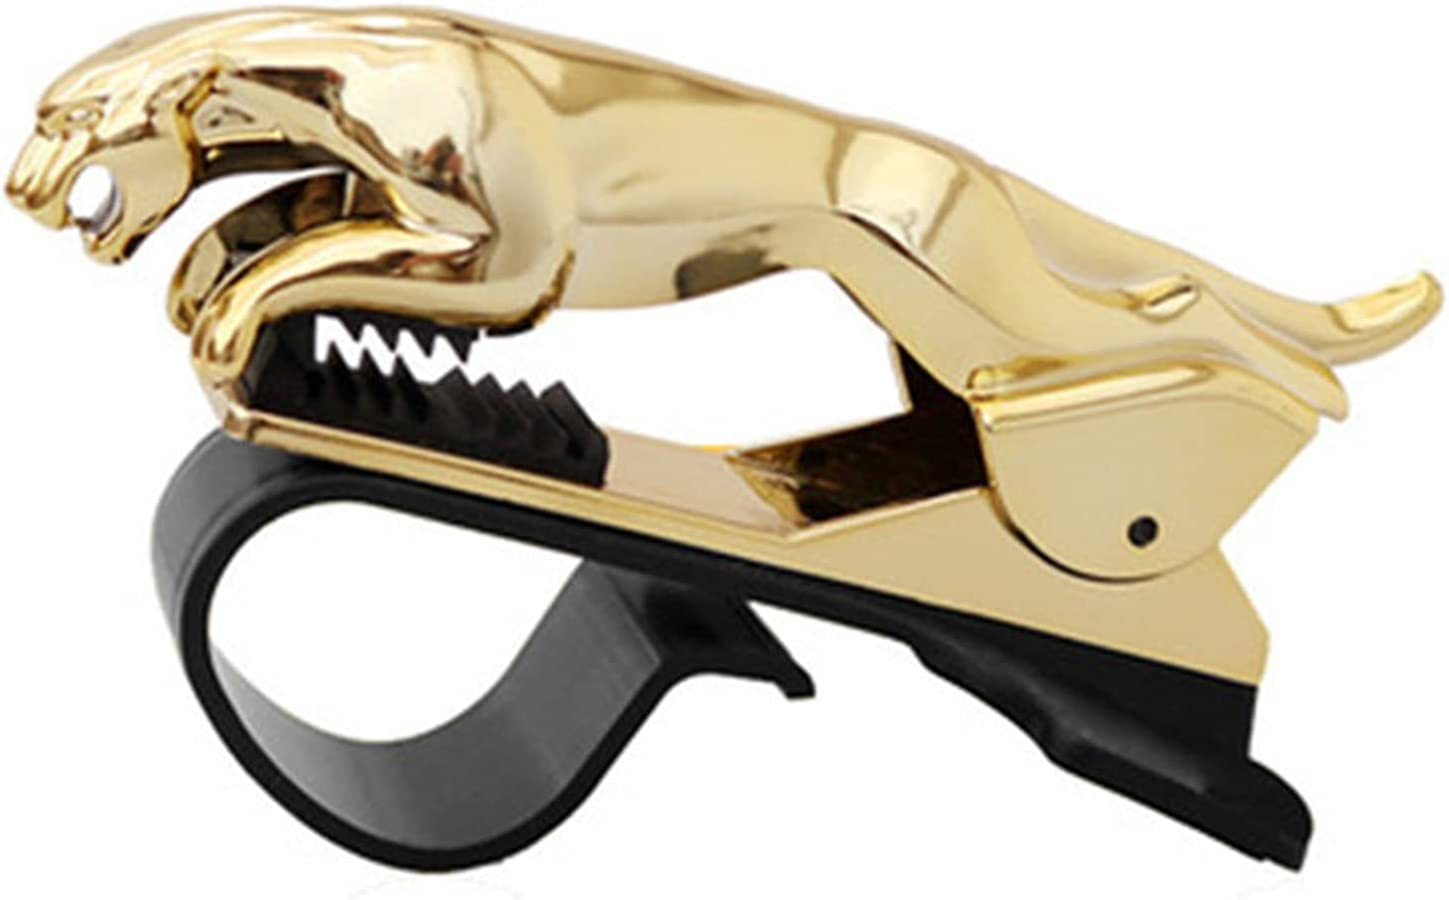 Leopard car Mobile Phone Bracket, can be Used for Mobile Phone Navigation and car Decoration…